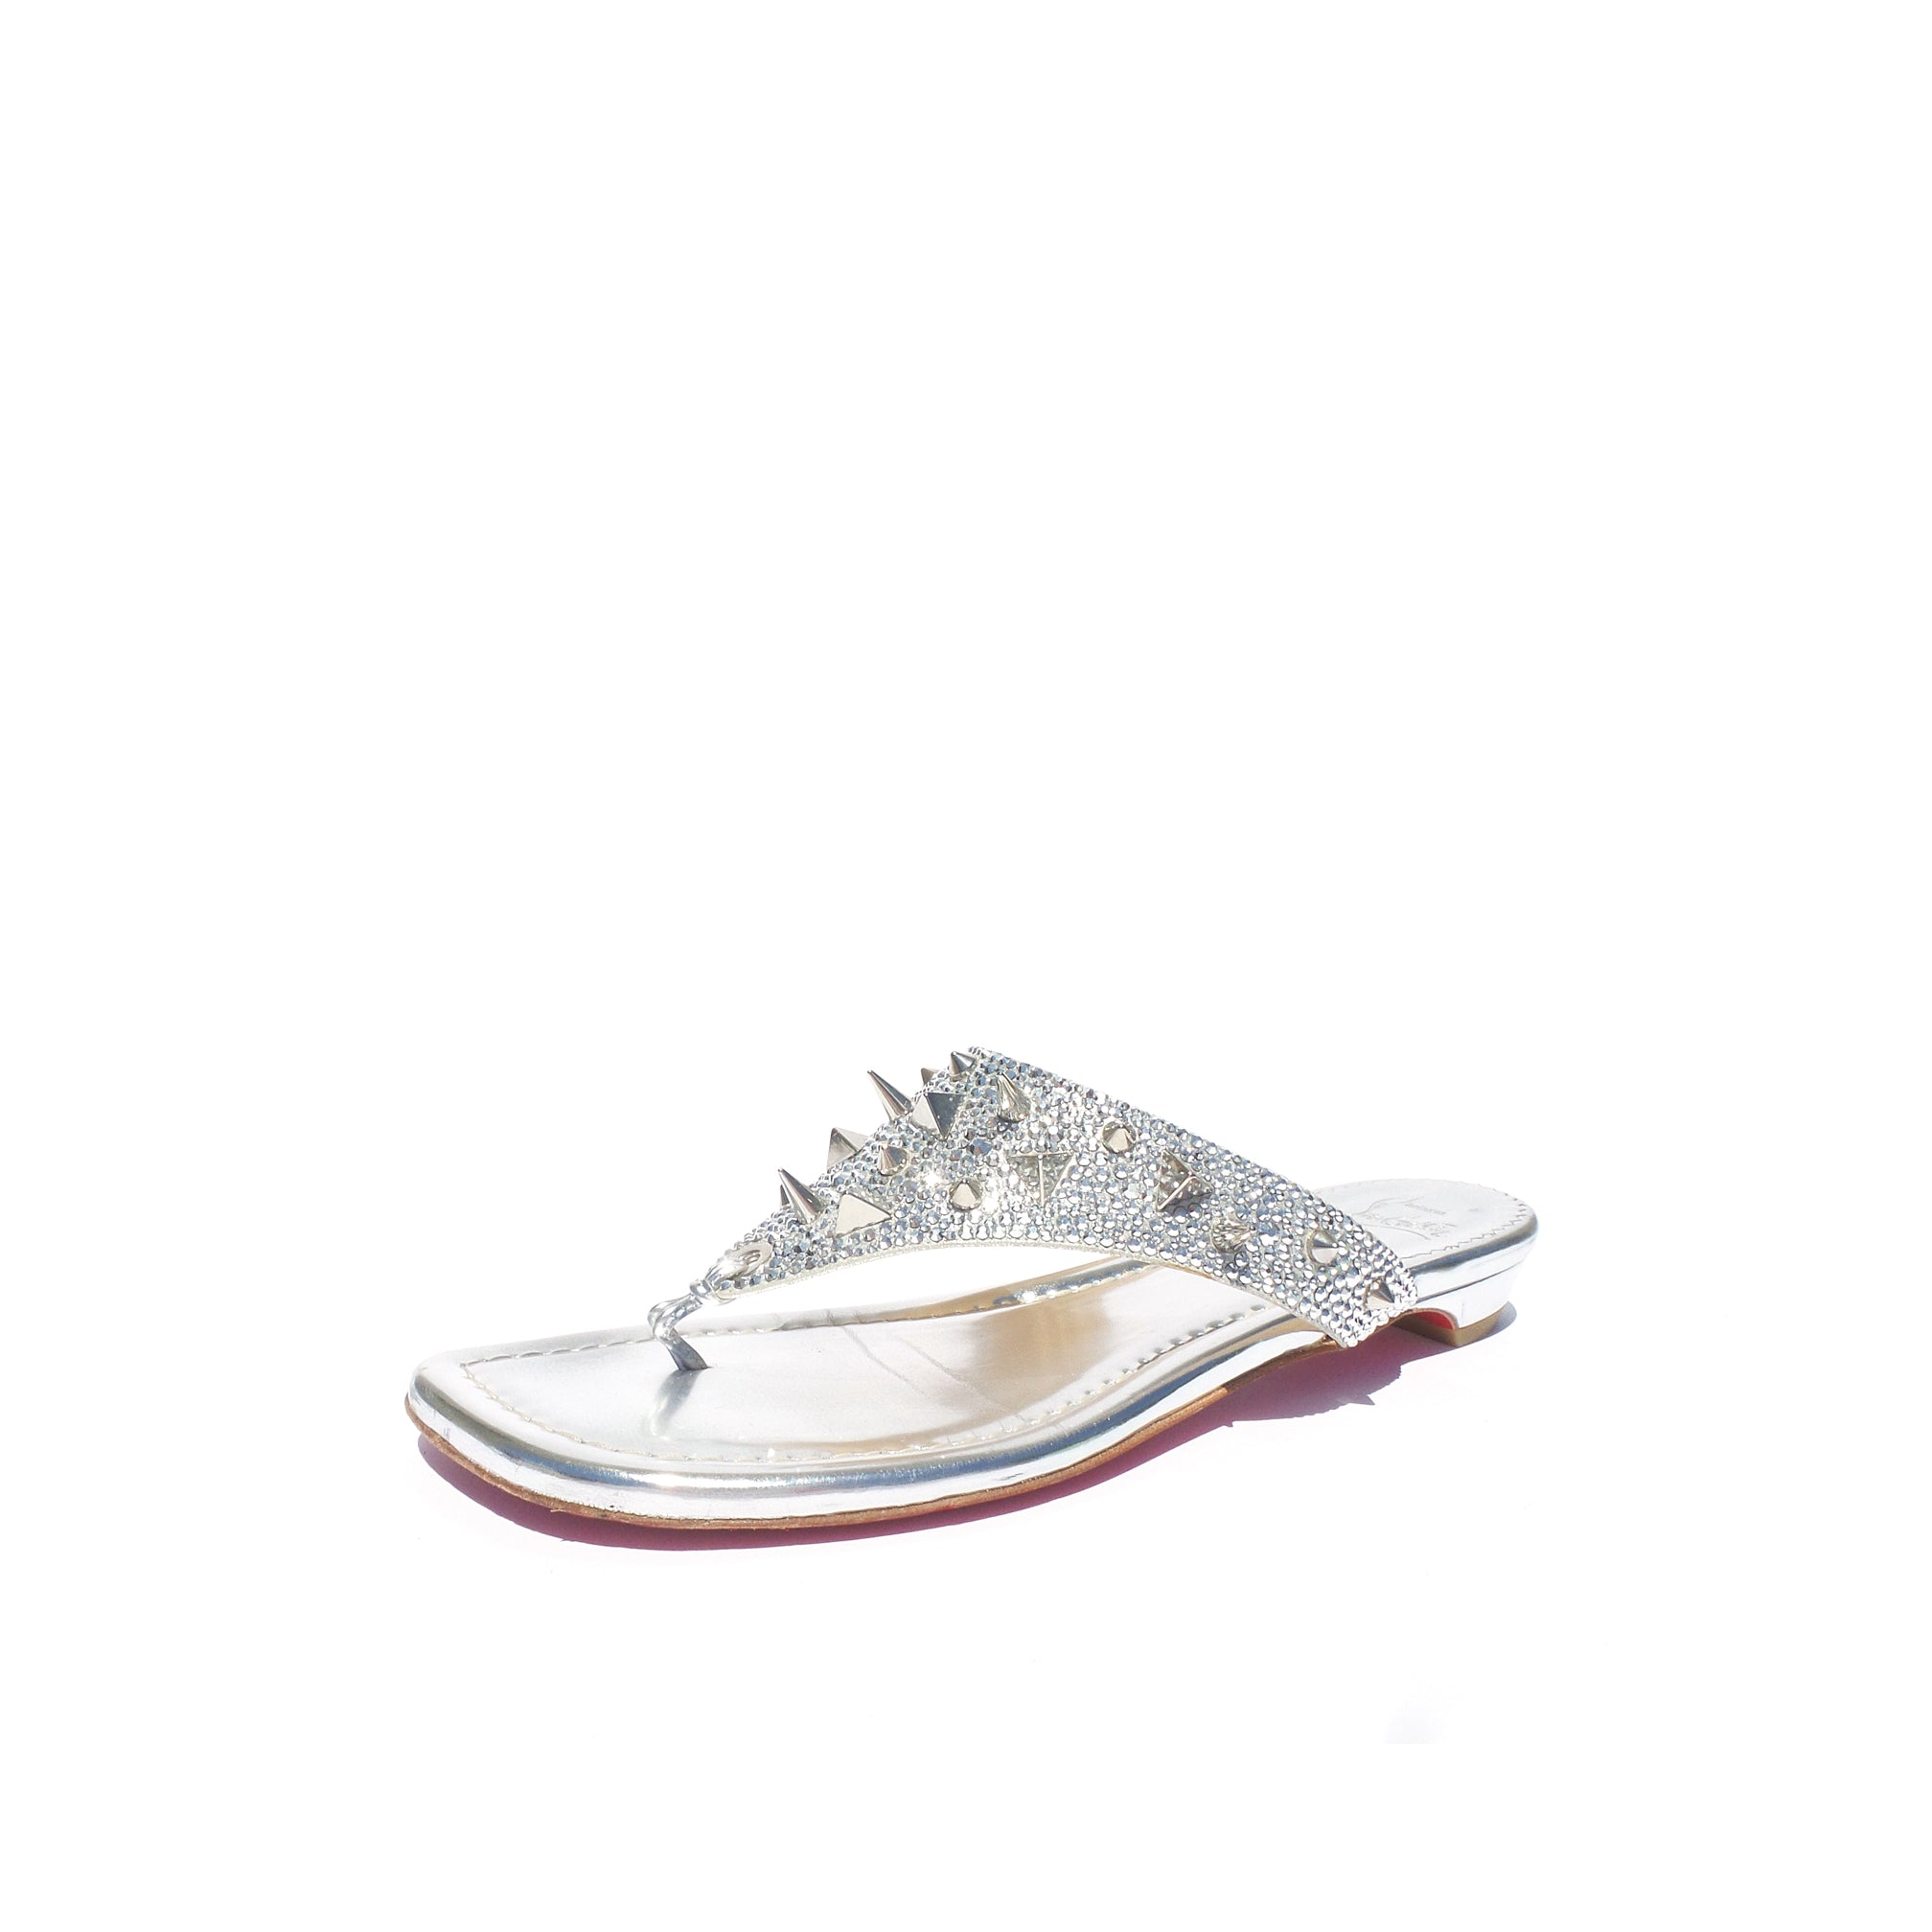 finest selection 6ee08 667bb CHRISTIAN LOUBOUTIN Strass Spikes Silver Leather Crystal Thong Flat Sandals  39